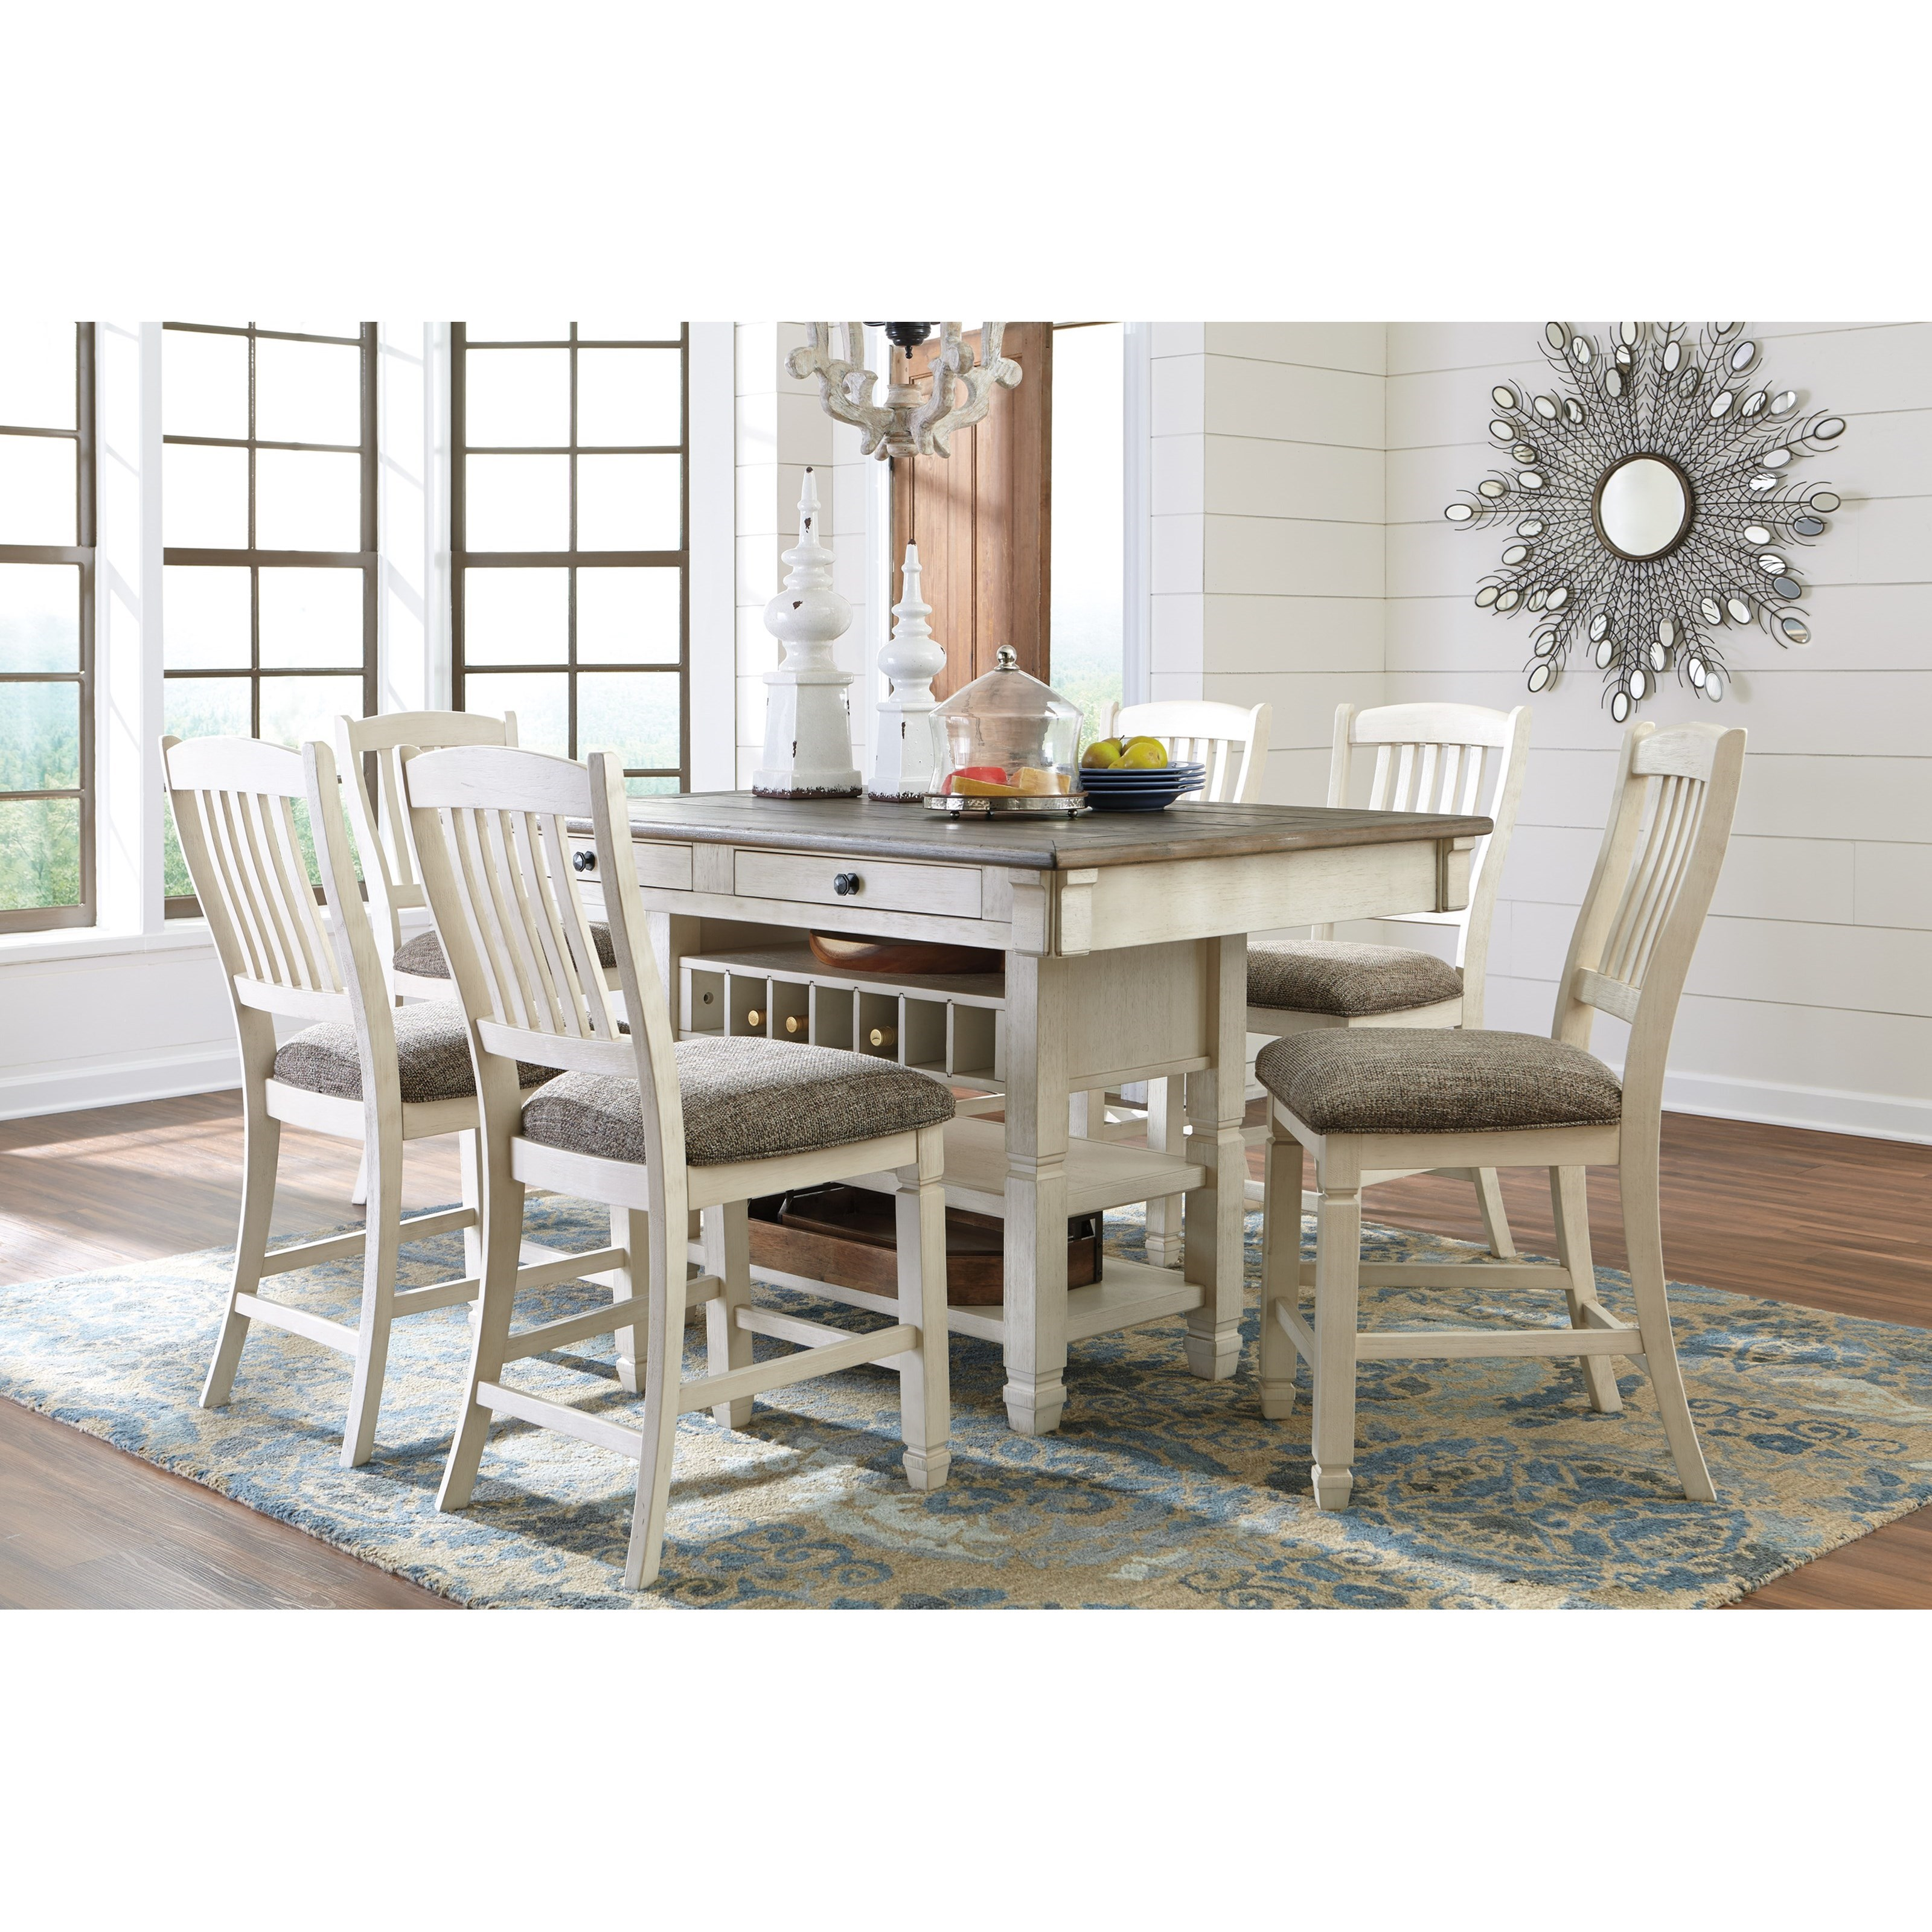 Signature design by ashley bolanburg d647 124 relaxed for Wine and design west ashley